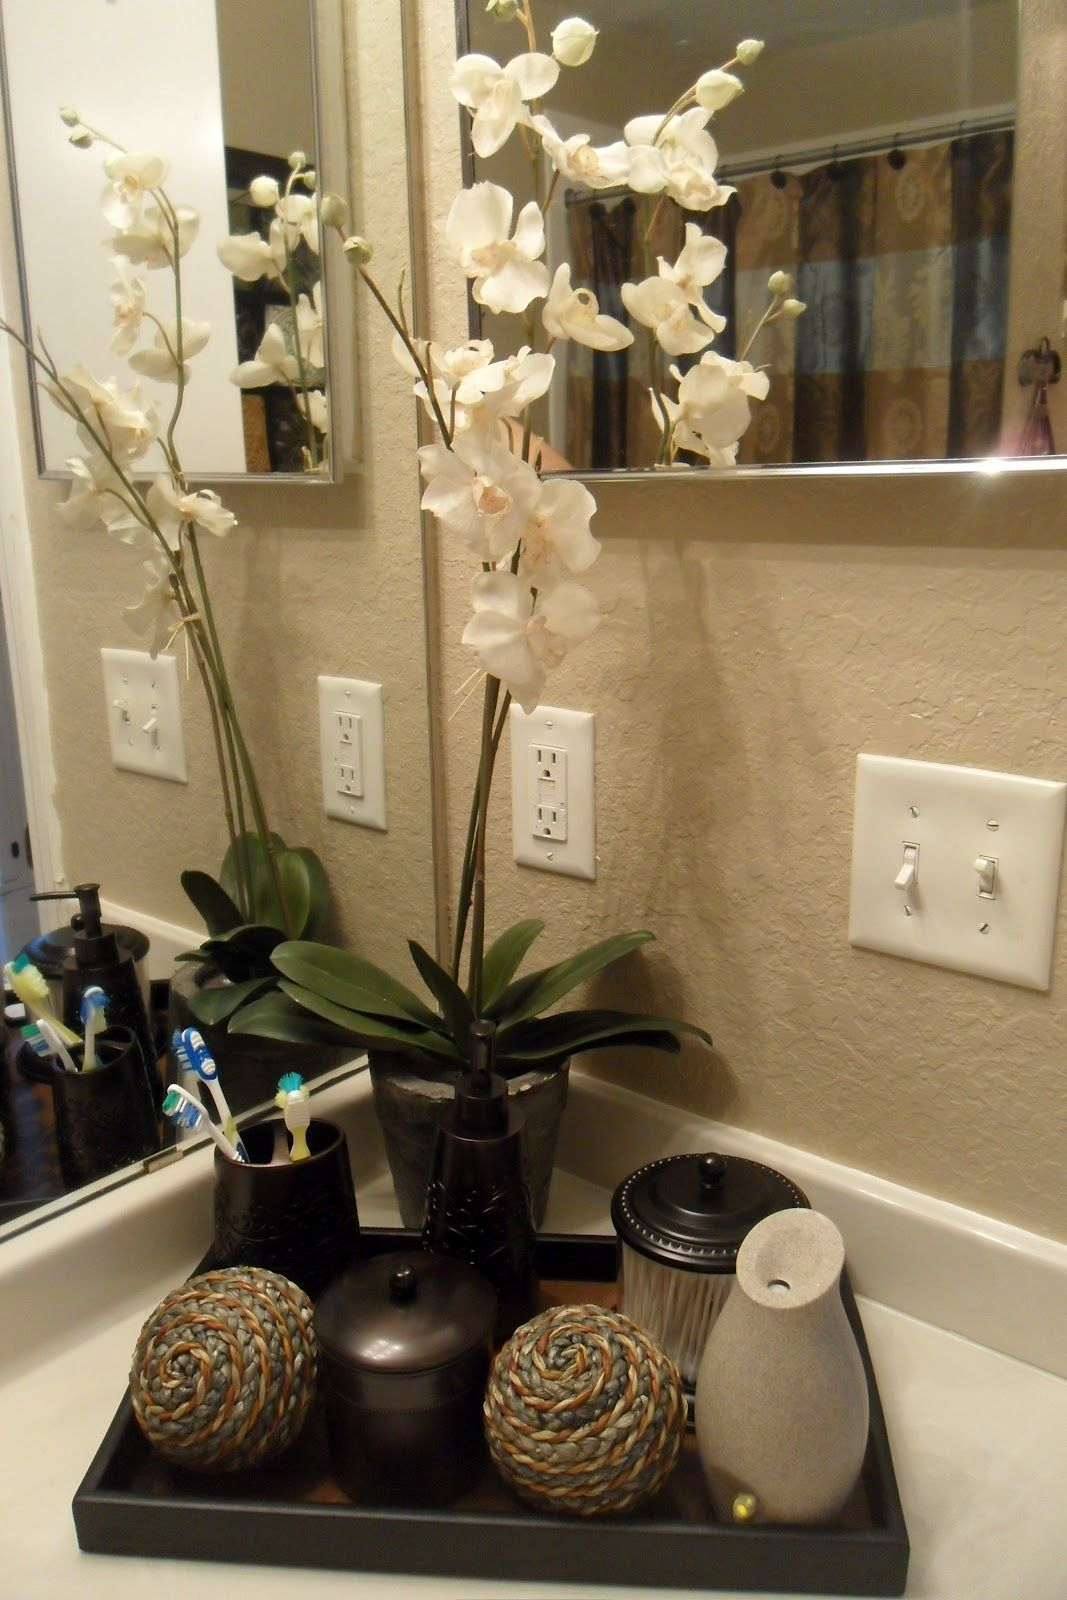 Unique Bathroom Decor Ideas Bathroom Bathrooms Decor And Decor - Best countertops for bathrooms for bathroom decor ideas